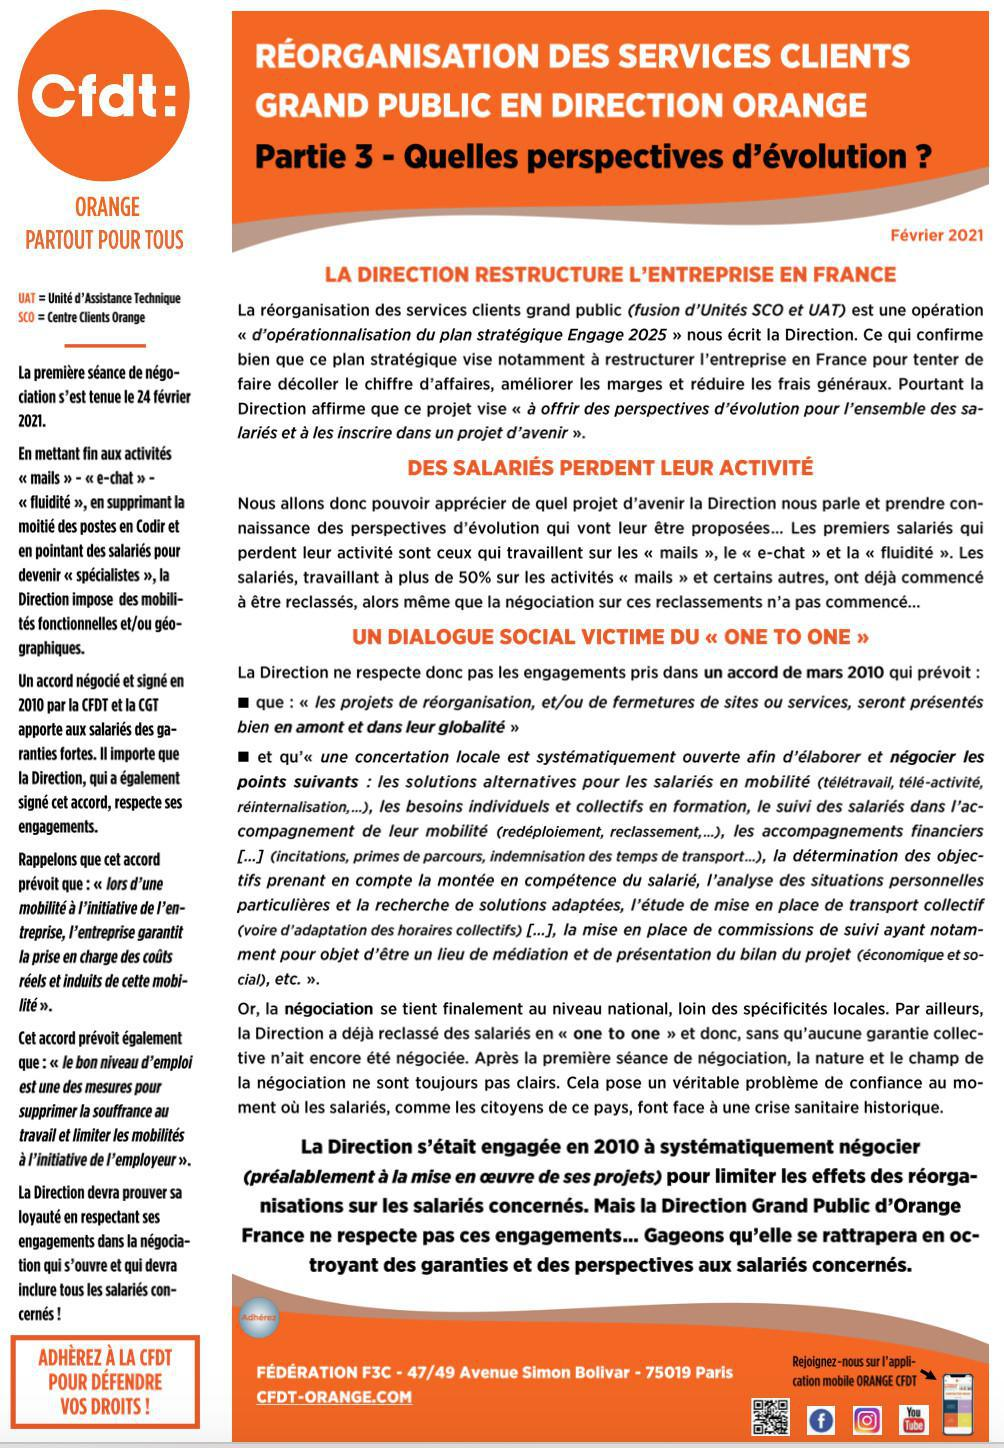 Réorganisation des Services Clients Grand Public en Direction Orange - Fév. 2021